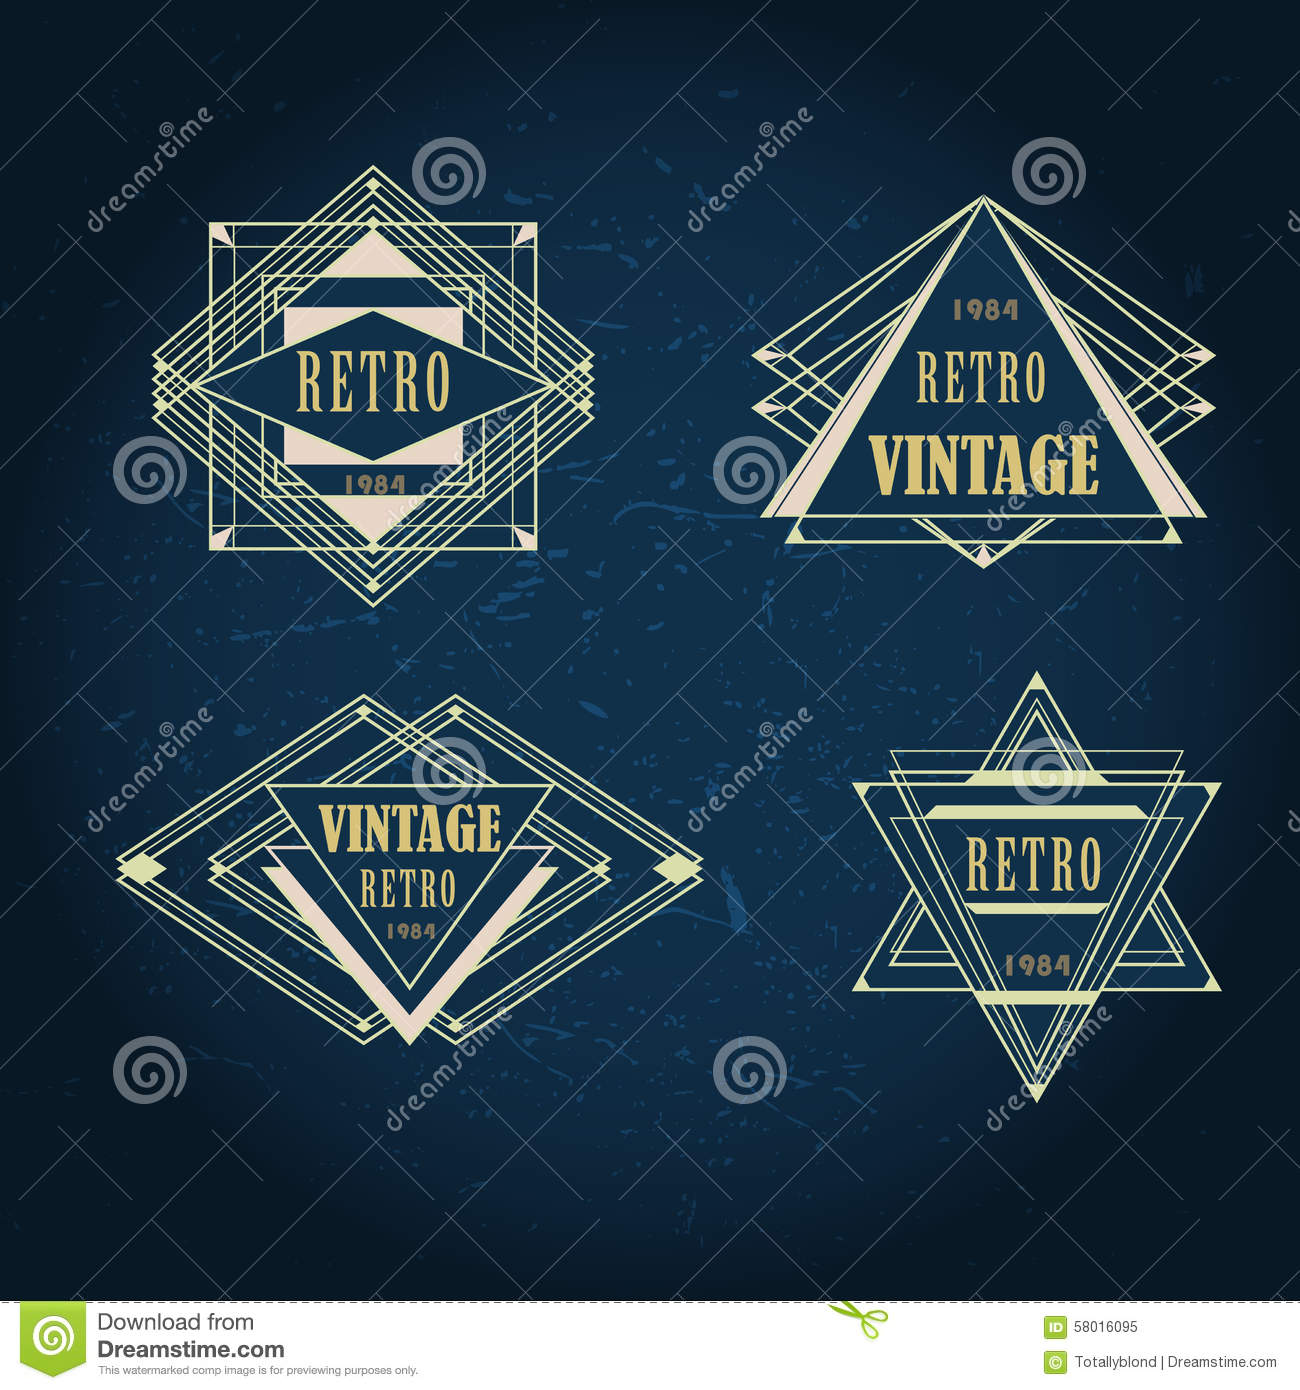 the great gatsby map with Stock Illustration Set Artdeco Vintage Labels Logo Frames Art Deco Antique Hipster Minimal Geometric Linear Vector Frame Border Label Design Image58016095 on February 3 Plot Structure moreover 2014 Great Gatsby Big Band Gala furthermore Free Clipart Borders And Frames as well Stock Illustration Set Artdeco Vintage Labels Logo Frames Art Deco Antique Hipster Minimal Geometric Linear Vector Frame Border Label Design Image58016095 besides Profile haley S Cake Kitchen  595488.